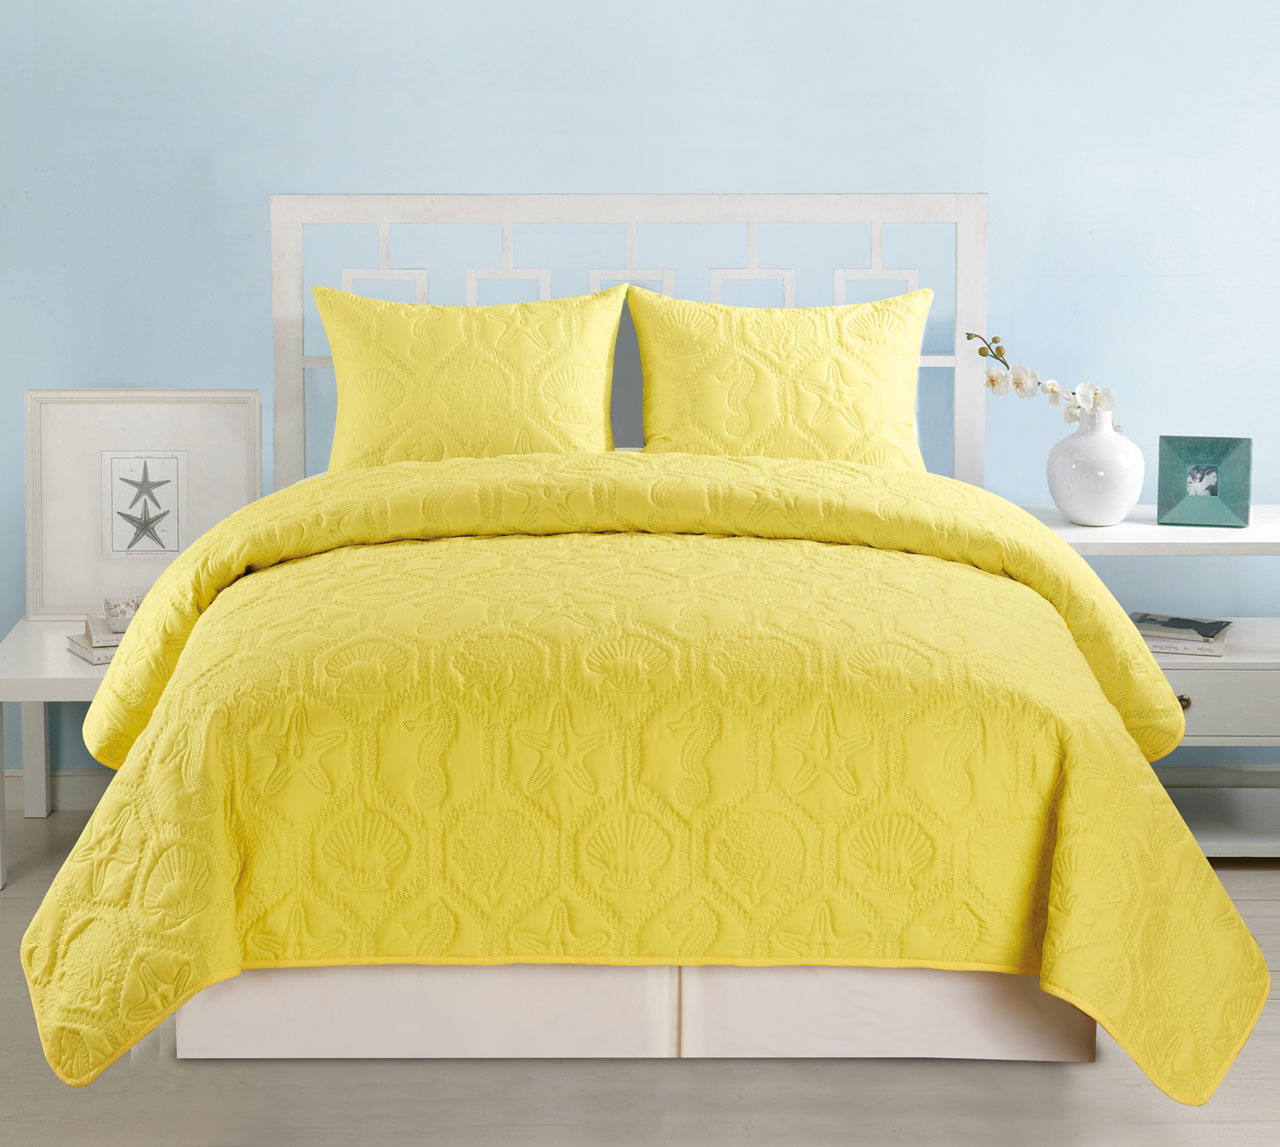 Seashell Turquoise Yellow Reversible Bedspread Quilt Set